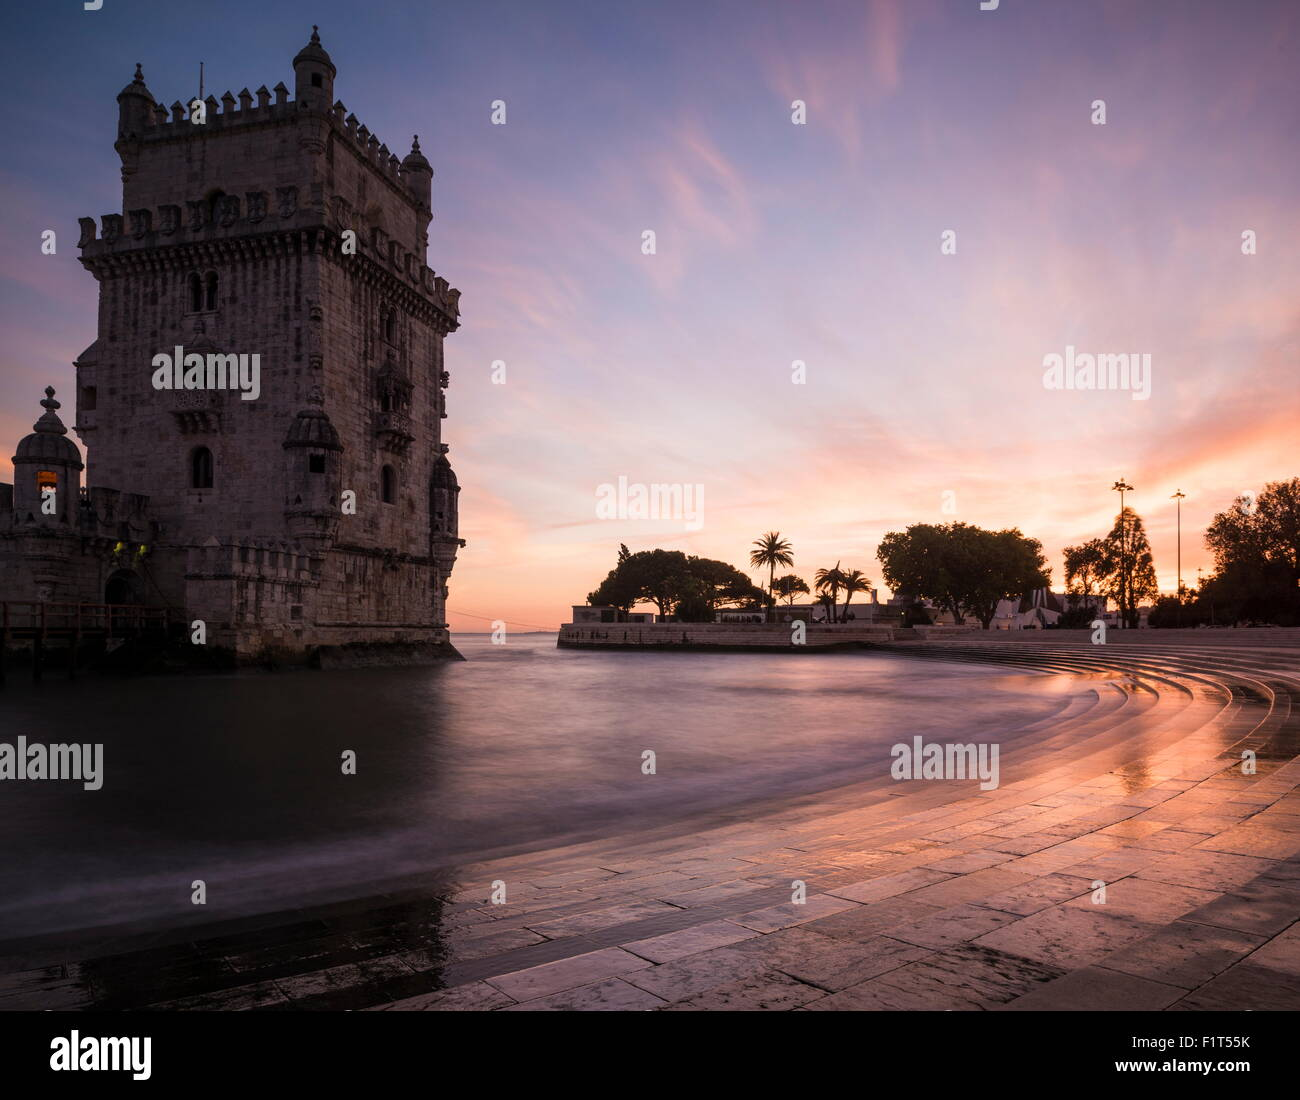 Belem Tower at dusk (Torre de Belem), UNESCO World Heritage Site, Lisbon, Portugal, Europe - Stock Image